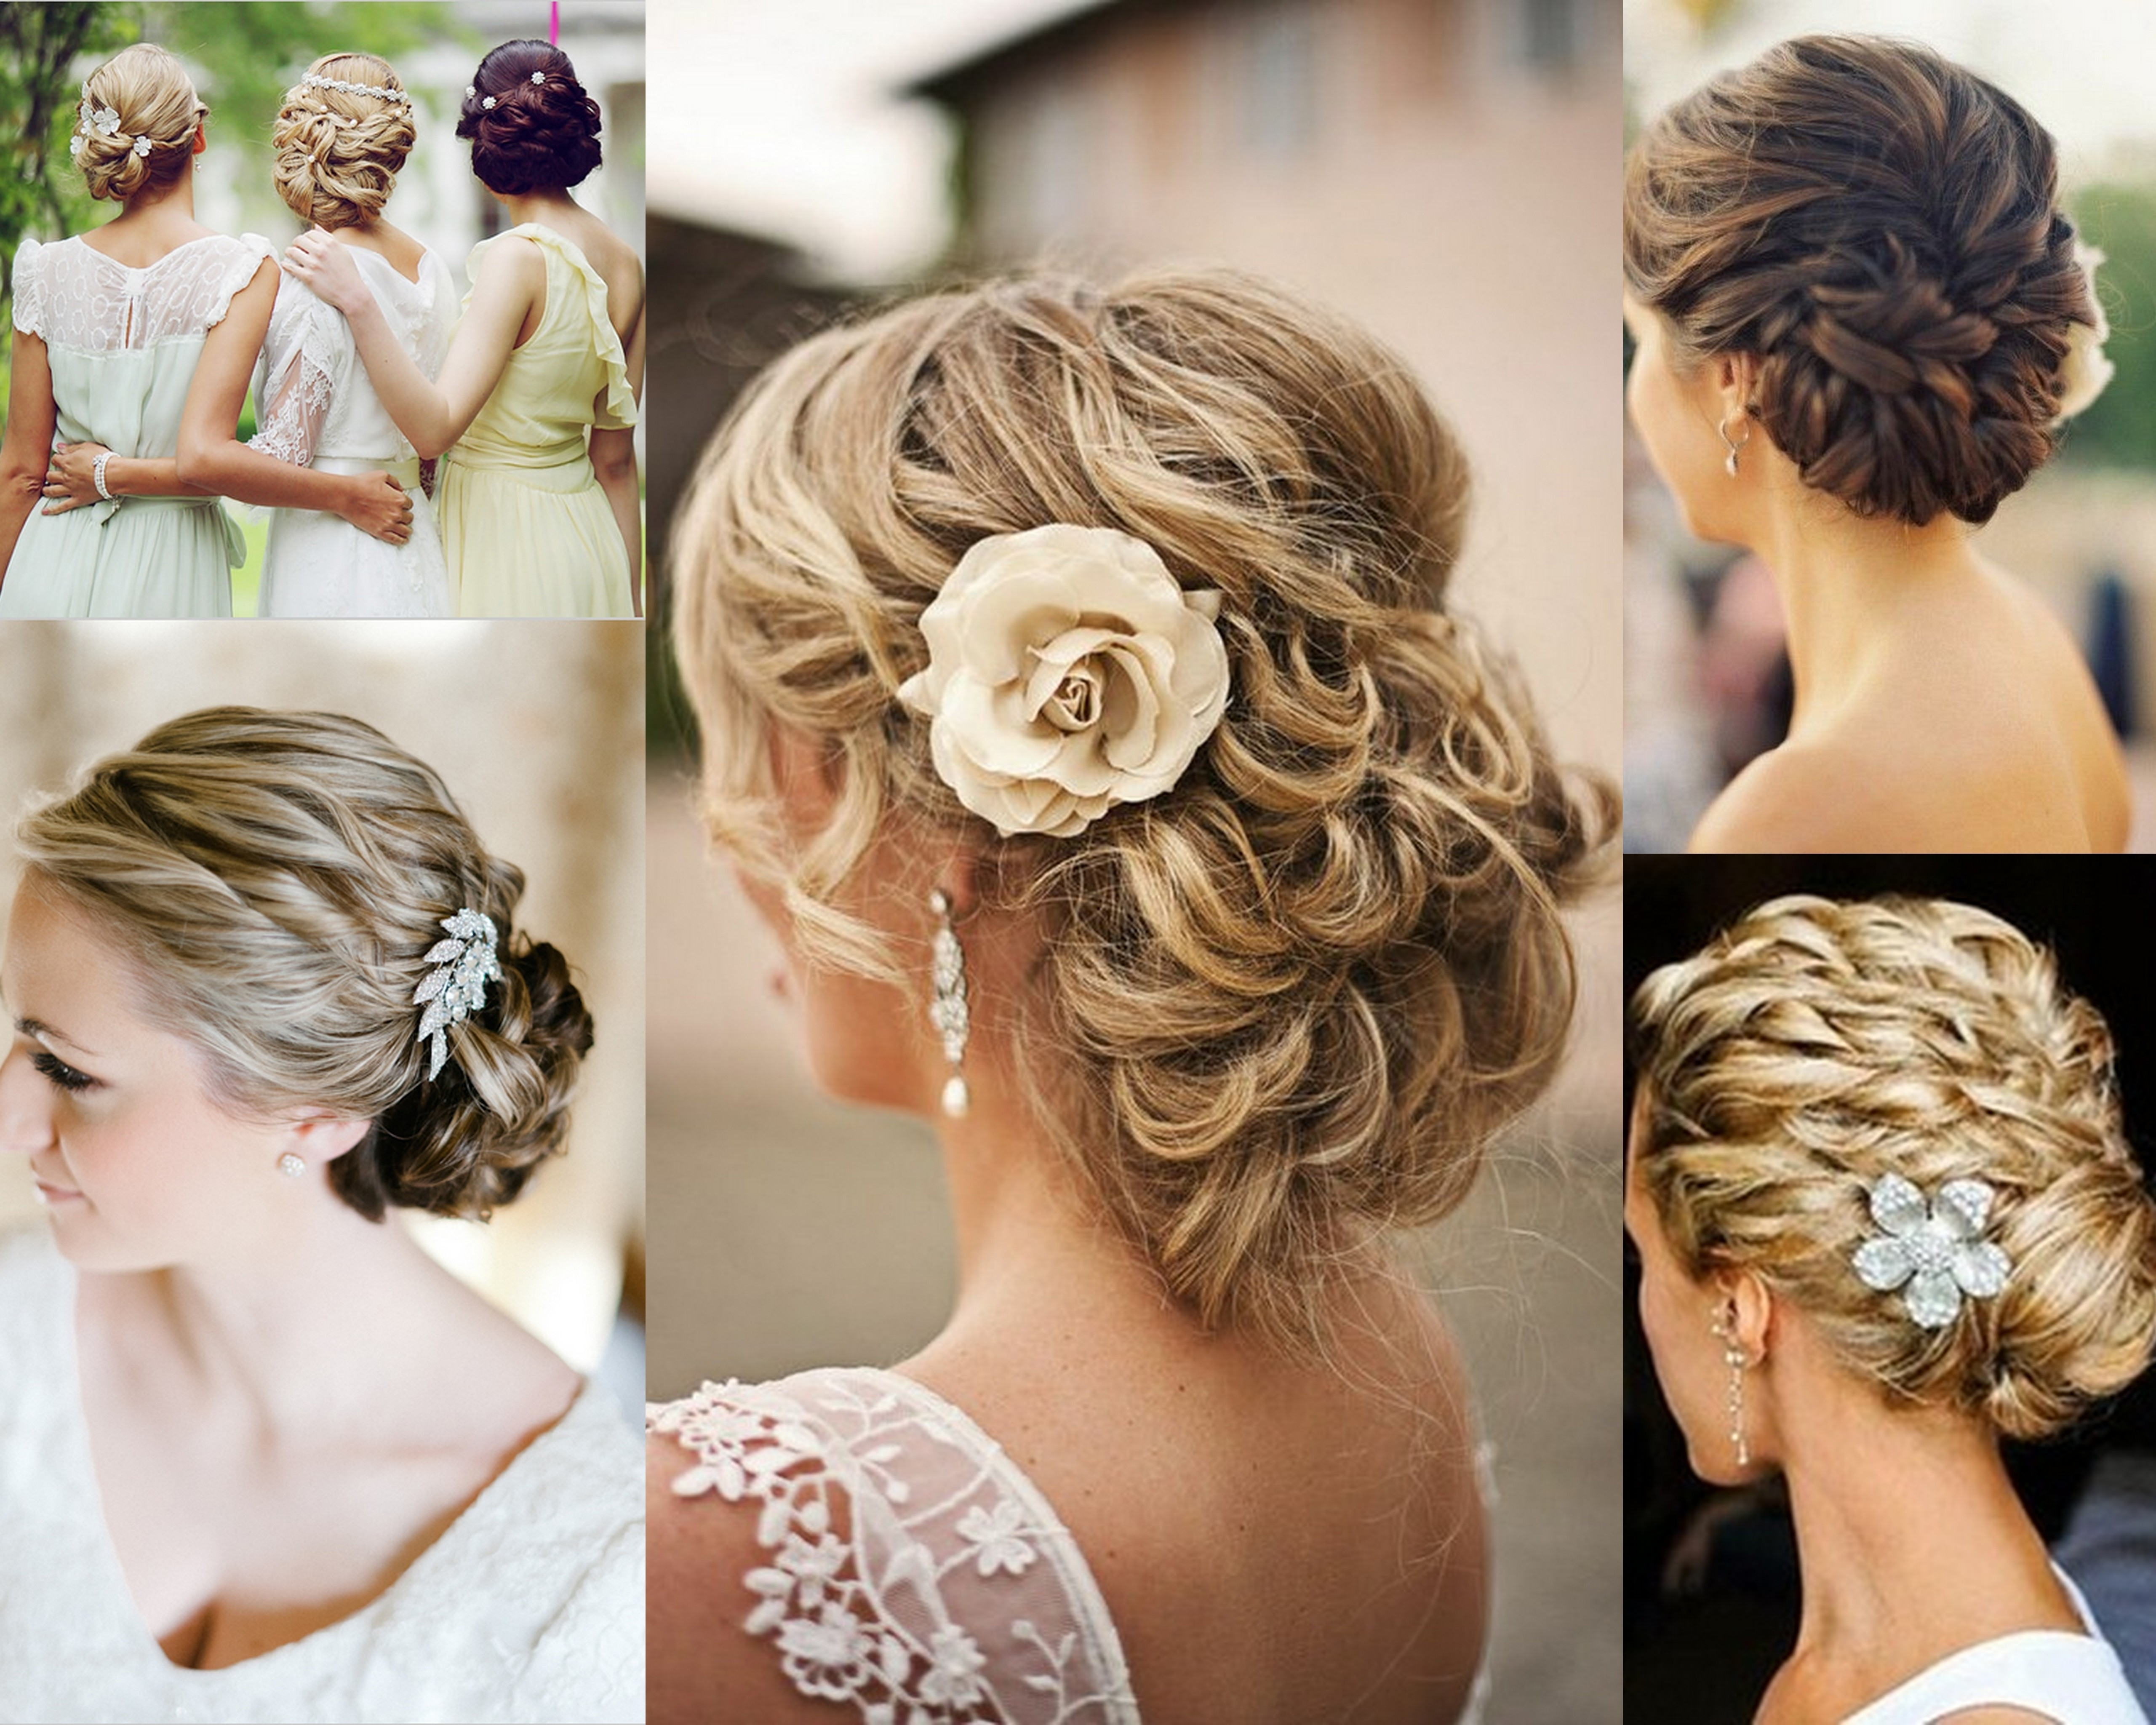 Updo Hairstyles For Wedding Wedding Updo Hairstyles Mother Of The In Mother Of The Bride Updo Hairstyles For Weddings (View 12 of 15)